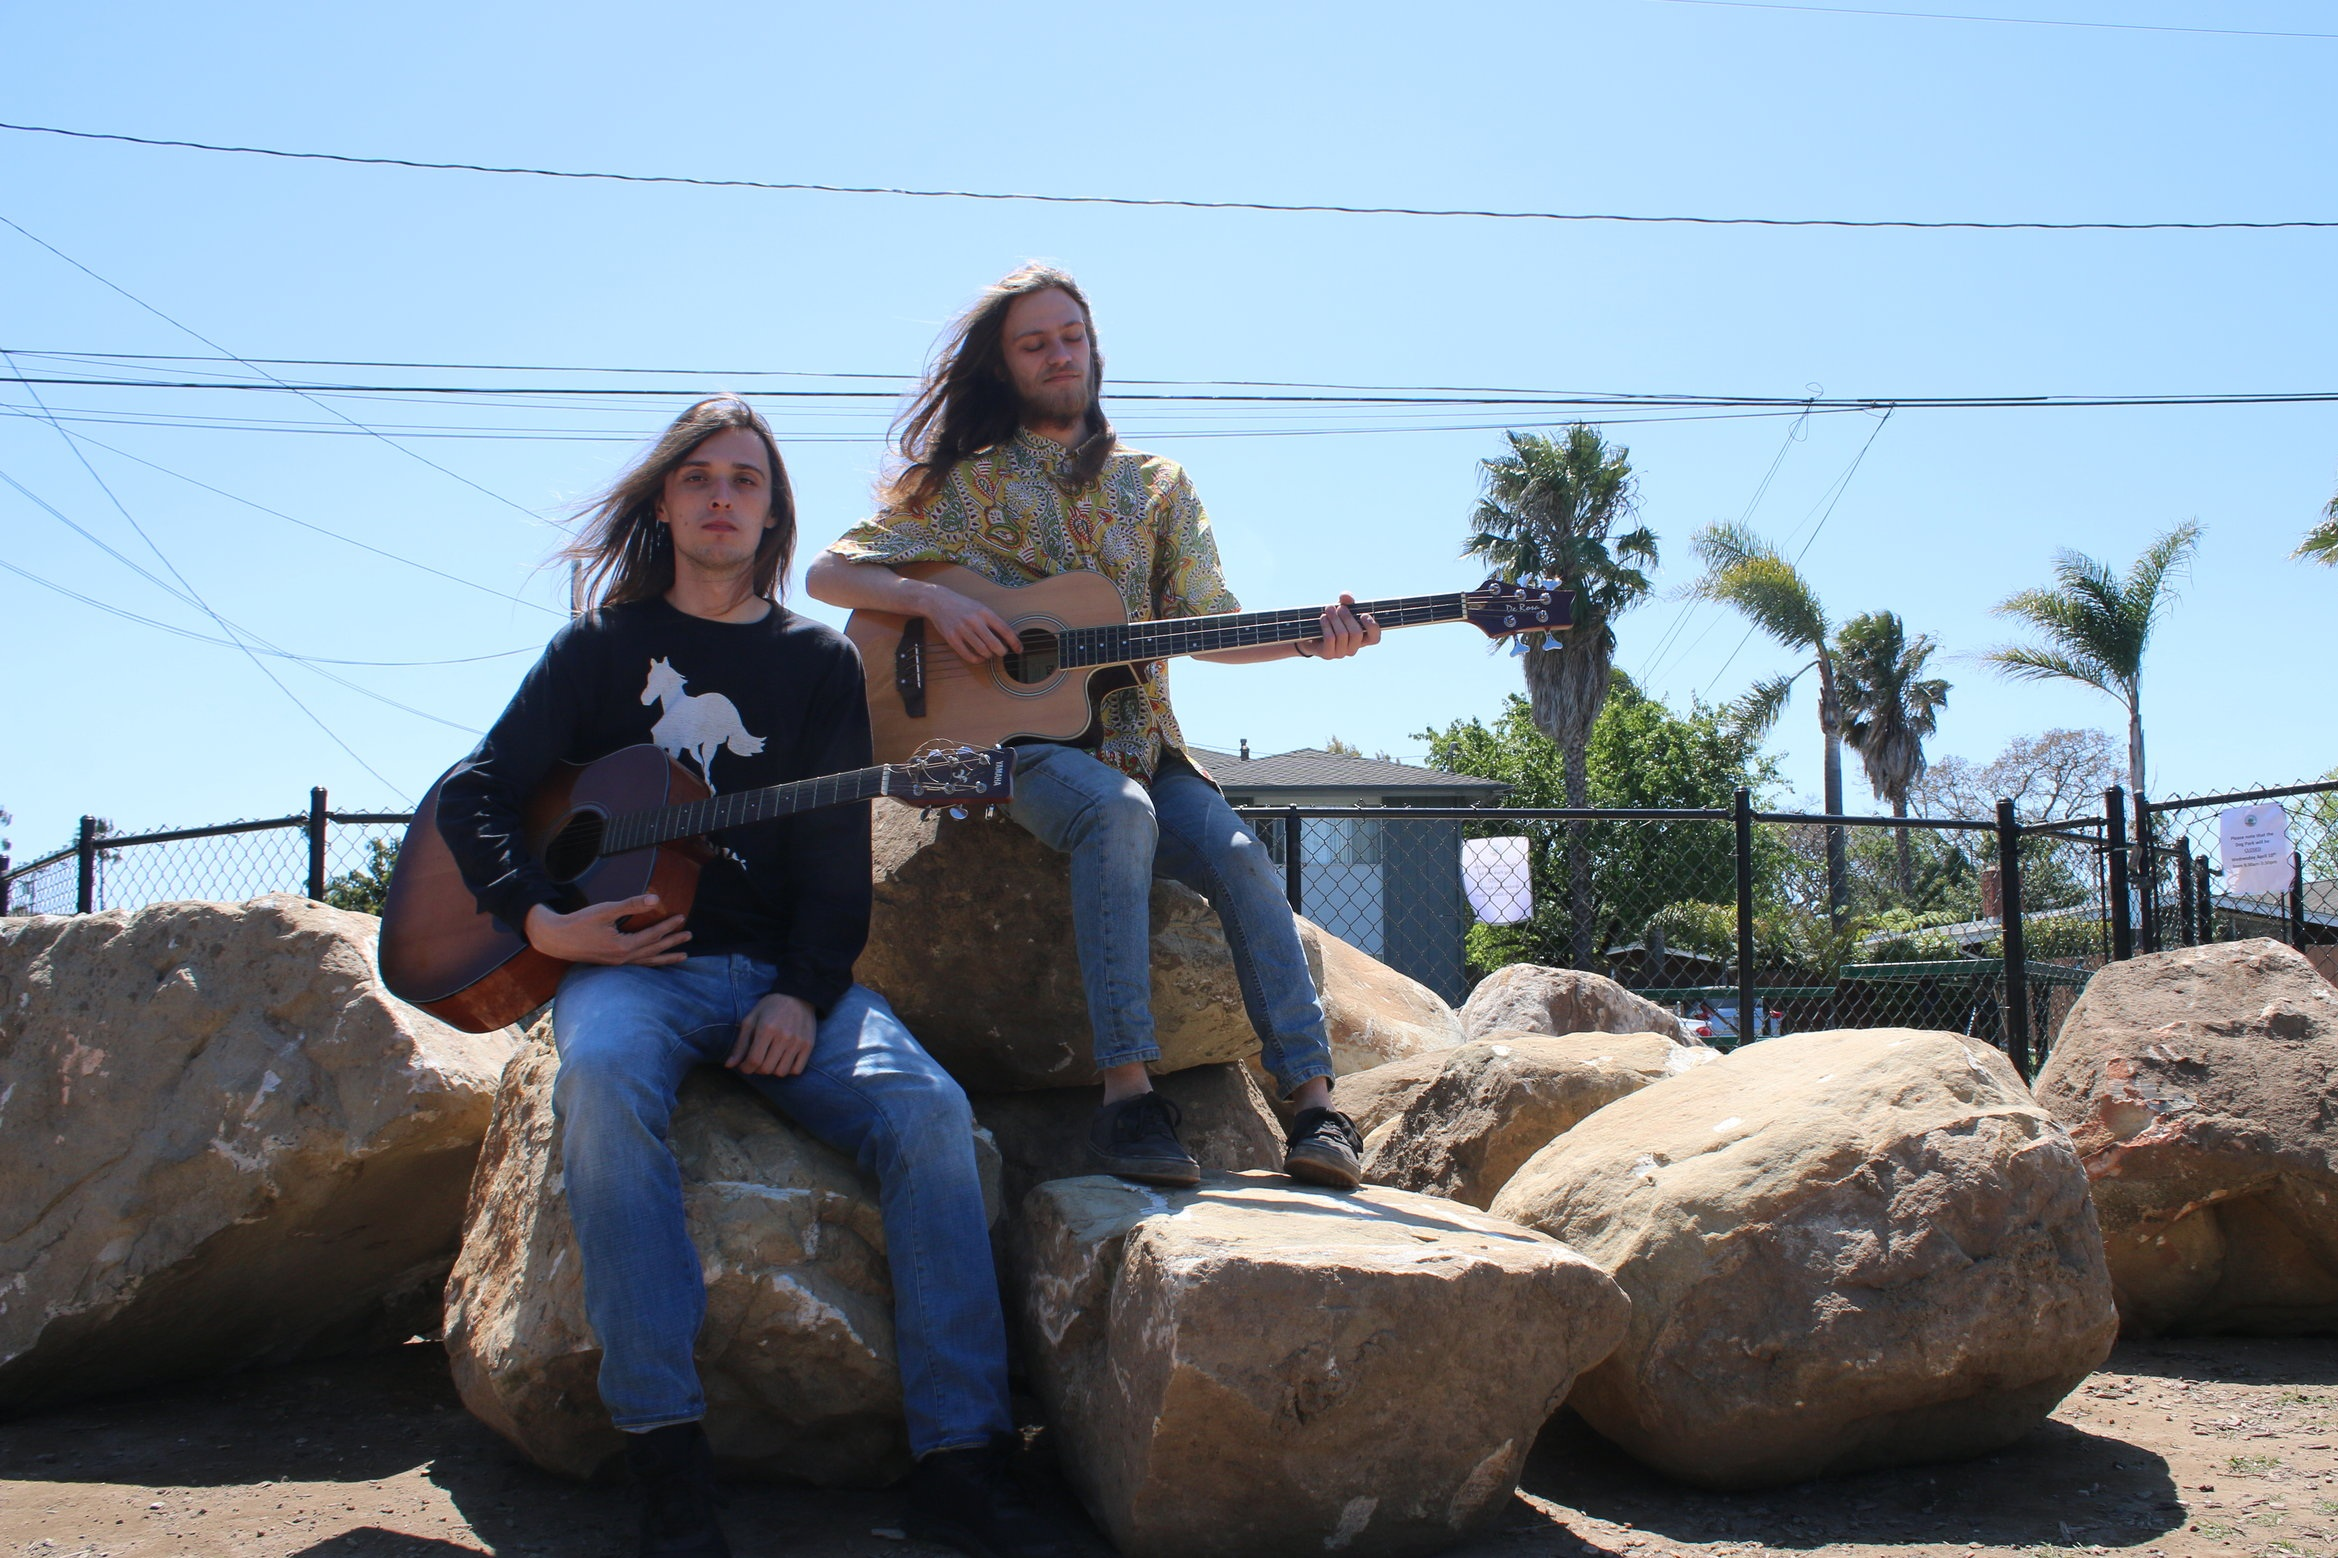 UC Santa Barbara Music Composition majors Cory Fildes(left) and Will Stout(right) show off some of their instruments in Isla Vista.